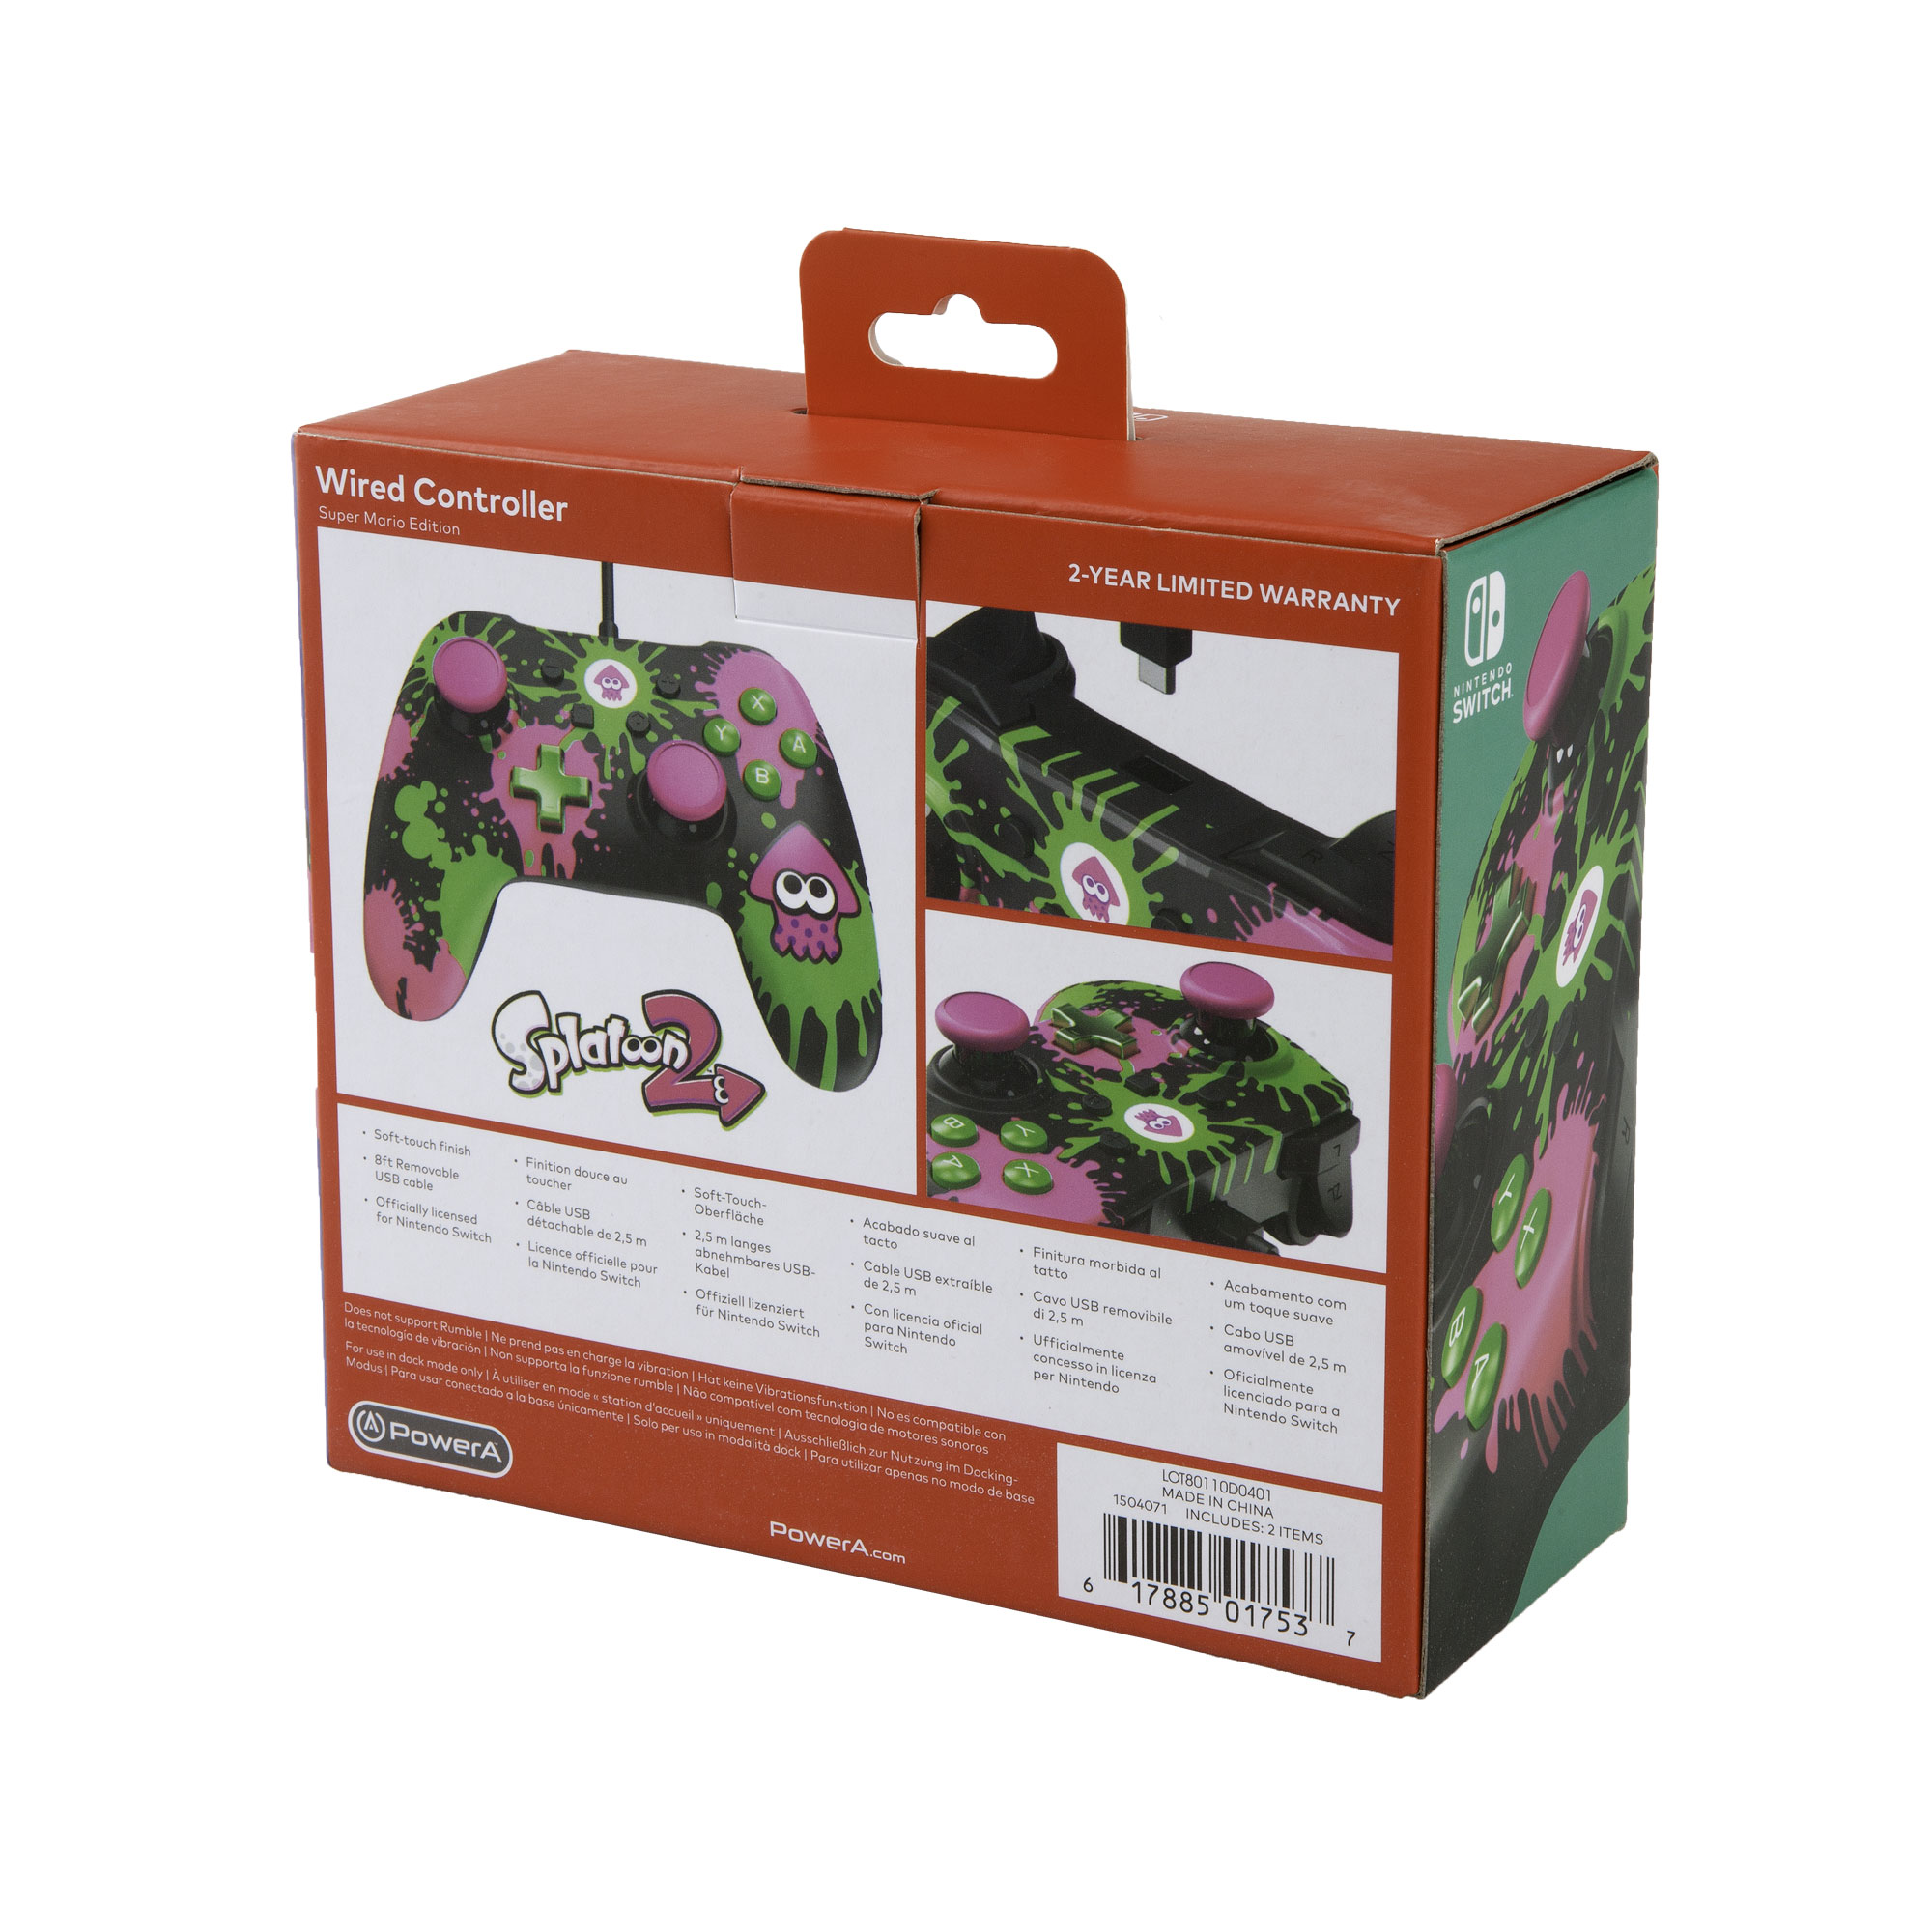 PowerA Wired Controller for Nintendo Switch - Splatoon 2 (1504071-01)